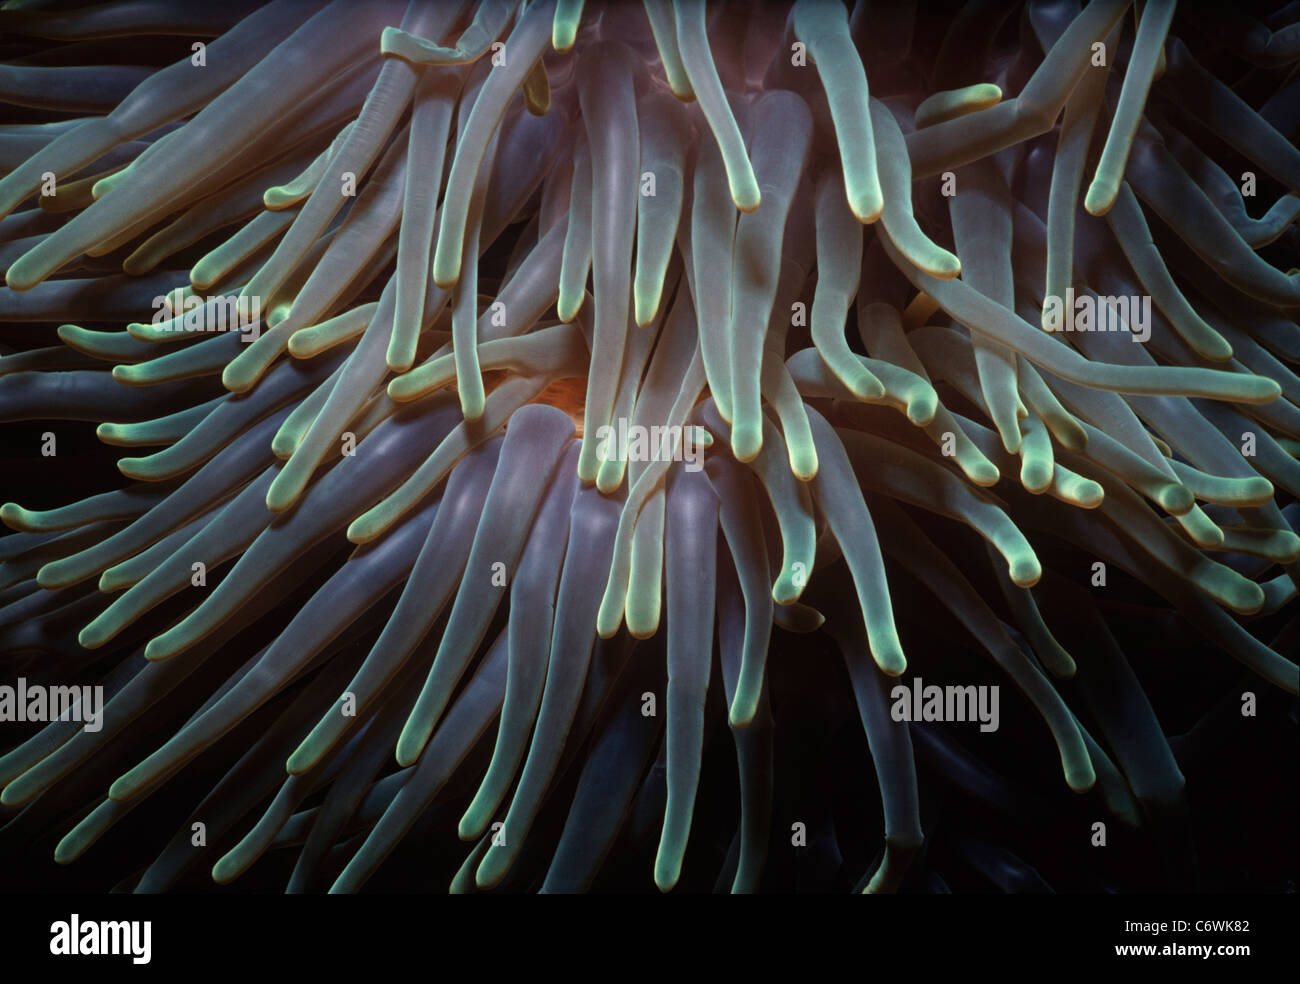 Tentacles of the Magnificent Sea Anemone (Heteractis magnifica). Borneo, South China Sea - Stock Image